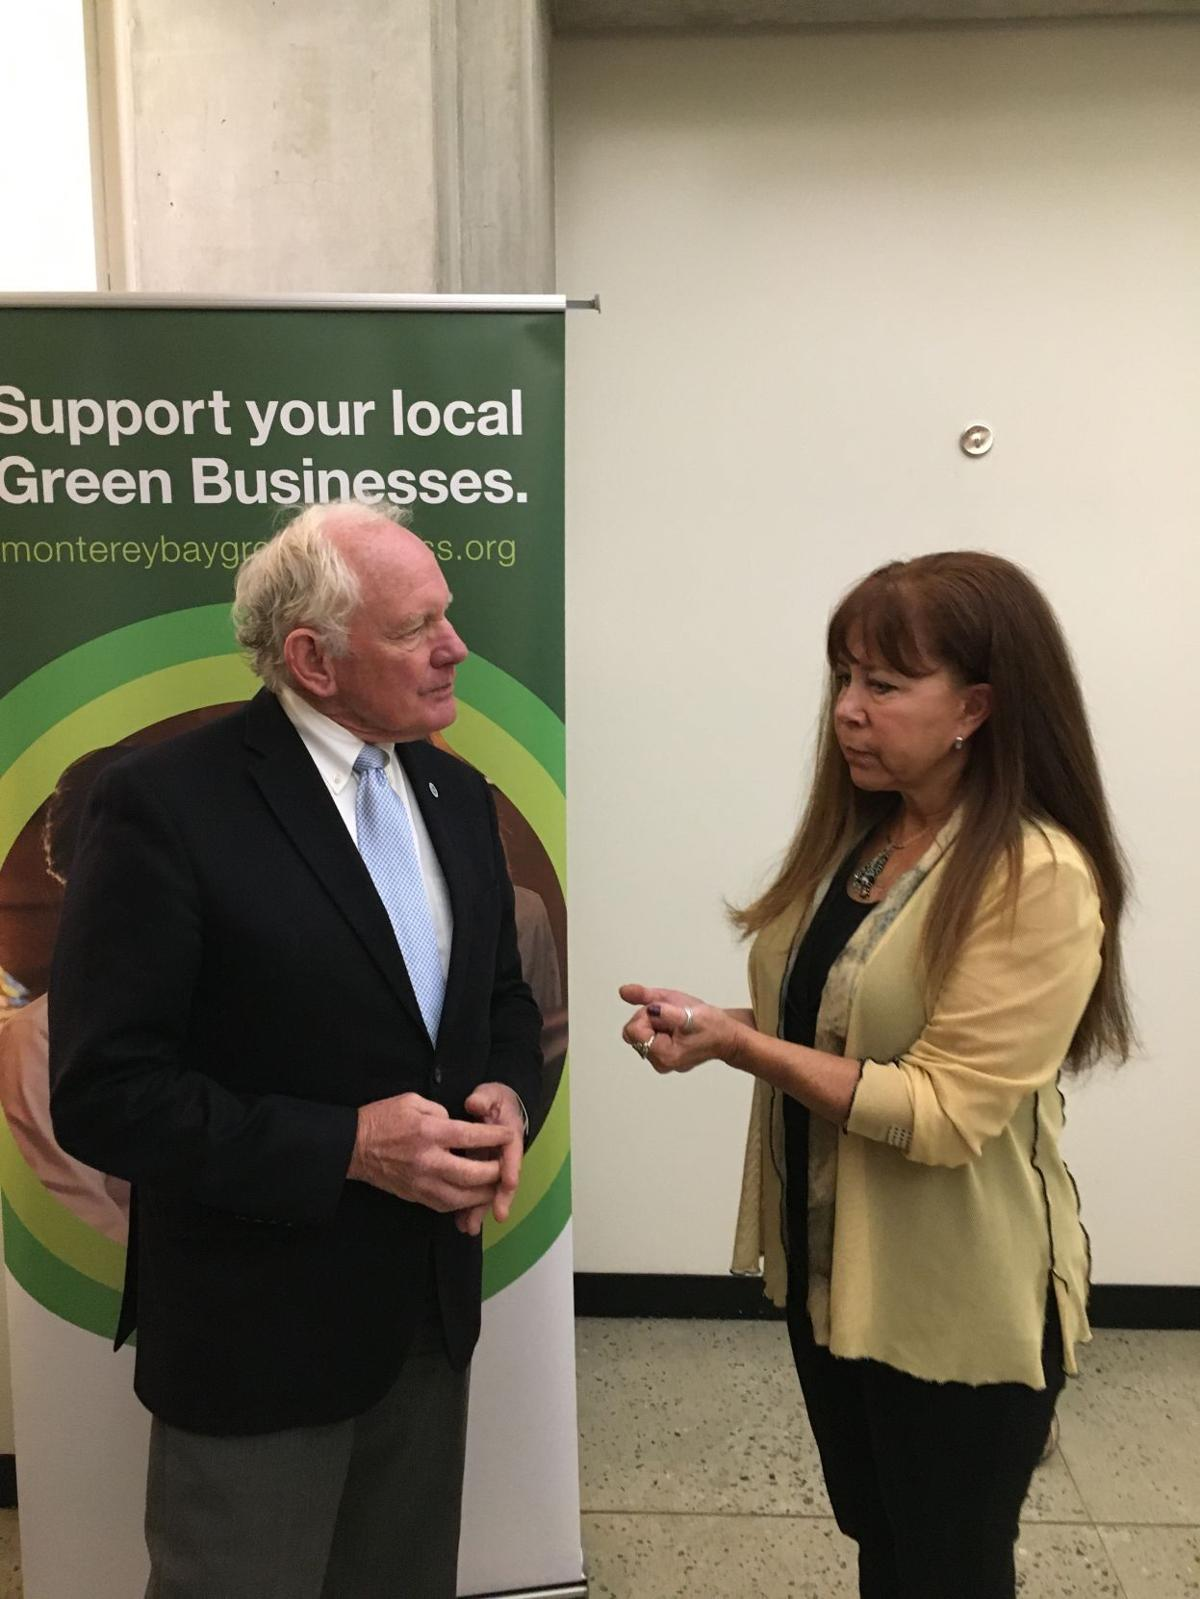 Donna Hawthorne Brunetti of Brunetti's Interiors chatting with Bruce McPherson, District Supervisor.